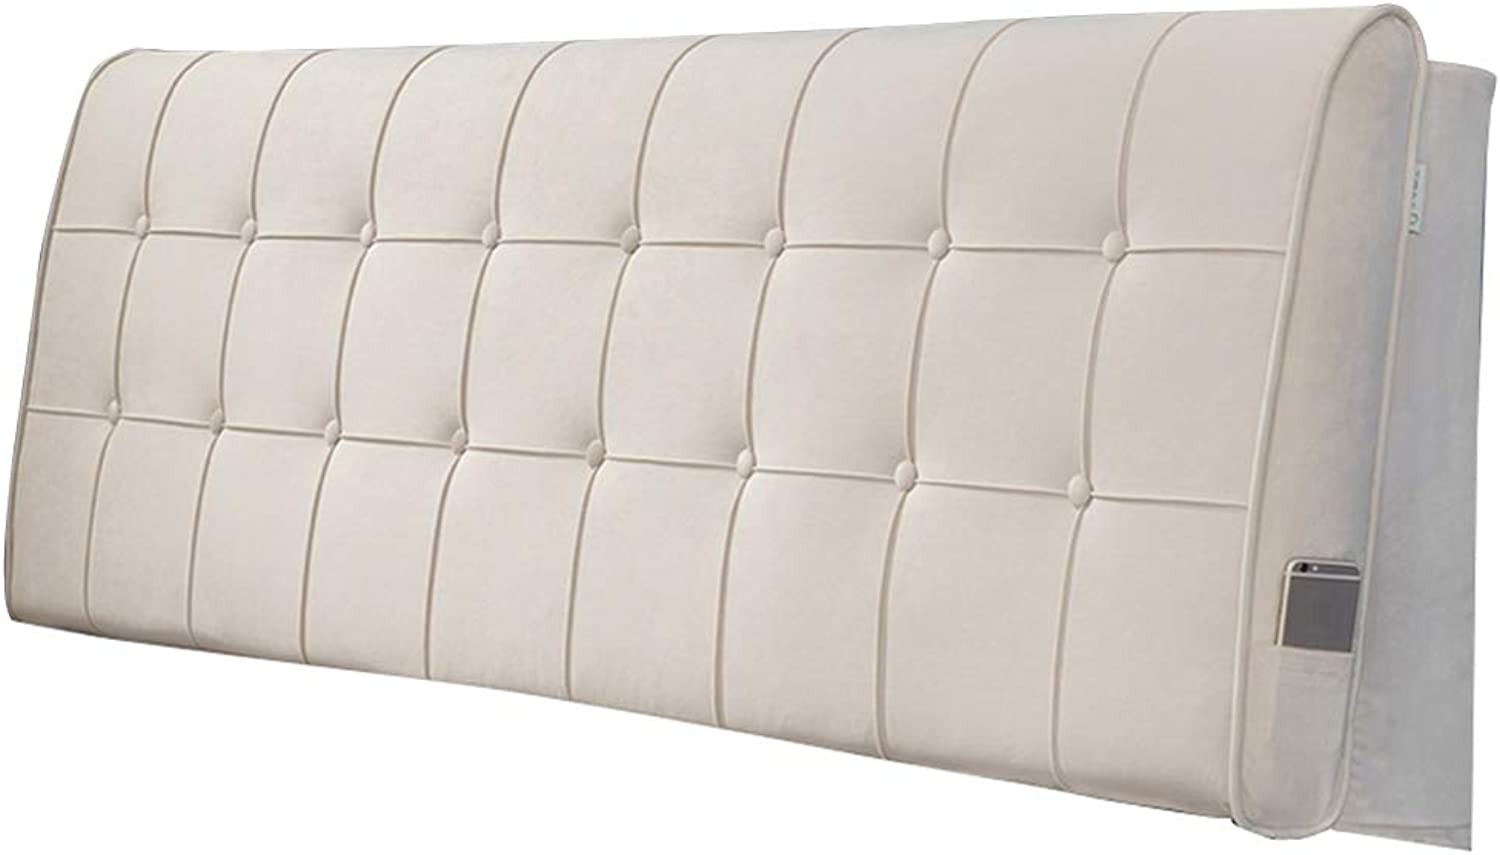 Upholstered Headboard for Bed Wedge Head Board Cushion Pillow Divan Backrest Flocking Fabric